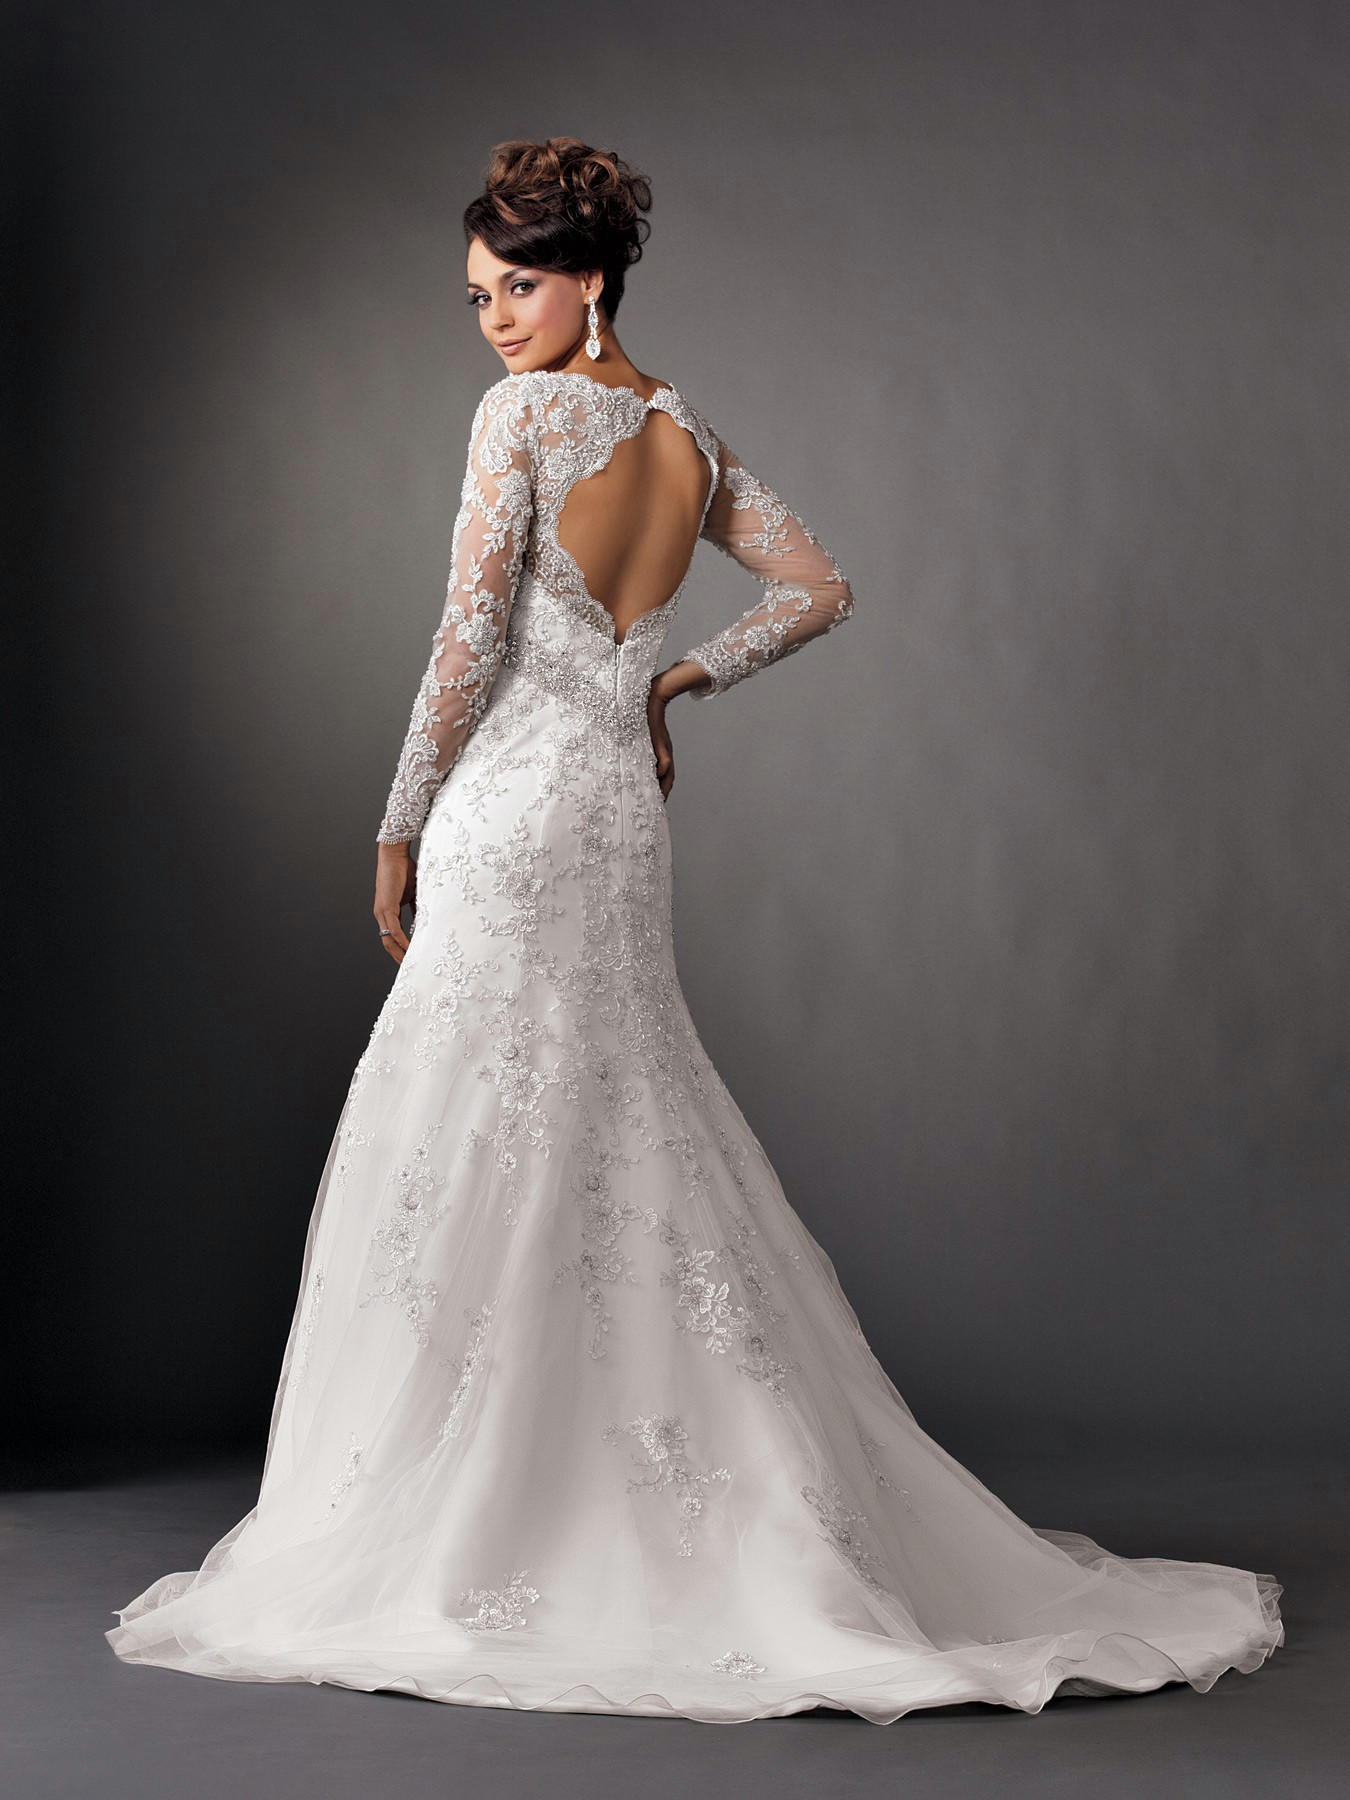 2014 2015 wedding dress trends lace sleeves dipped for Lace sleeve wedding dresses